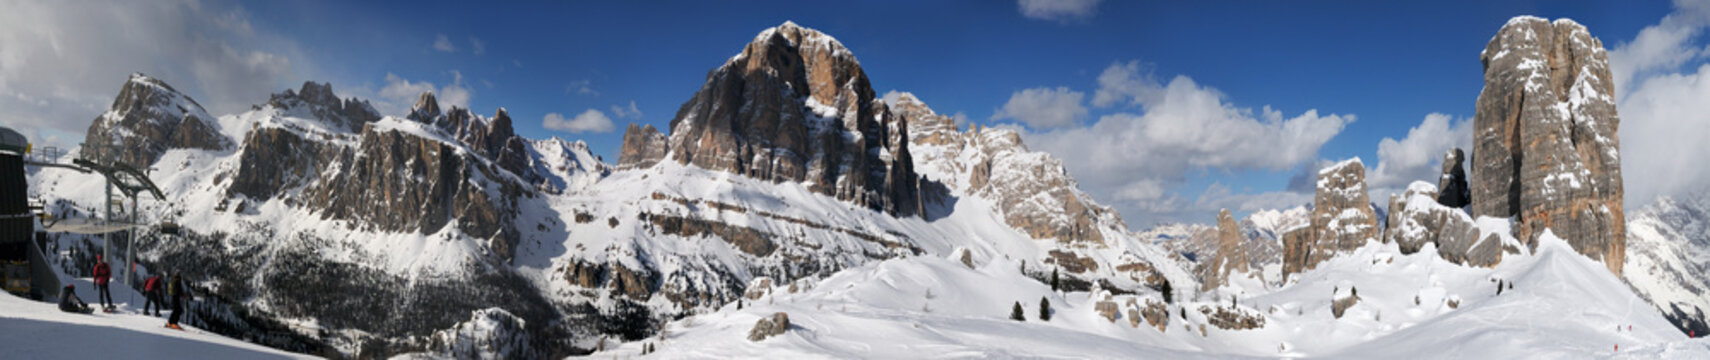 Beautiful winter landscape in the Cortina d'Ampezzo Dolomites. From the left the Tofana di Rozes and to the right the Cinque Torri group. Veneto, Italy.